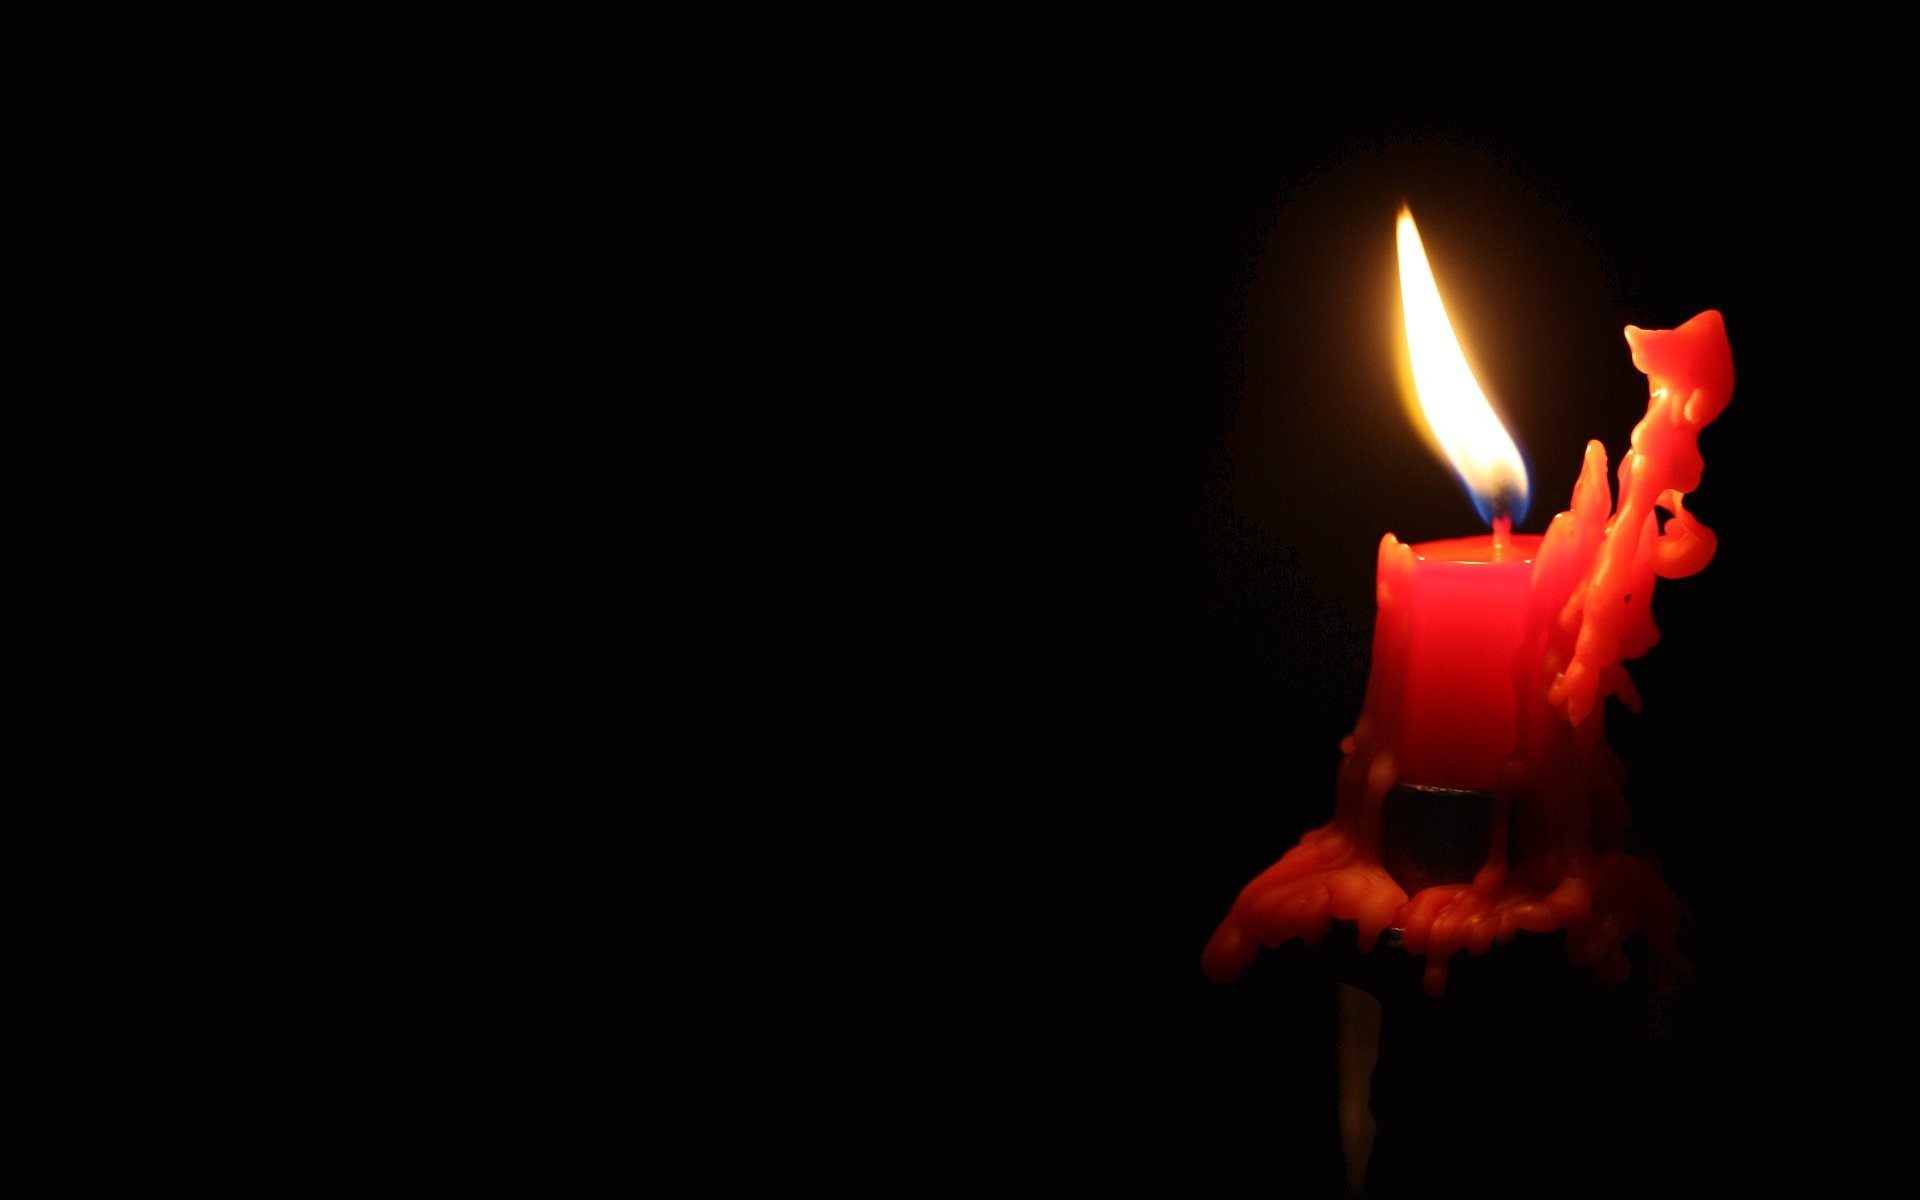 Candles In The Dark HD Wallpaper | 3D & Abstract Wallpapers